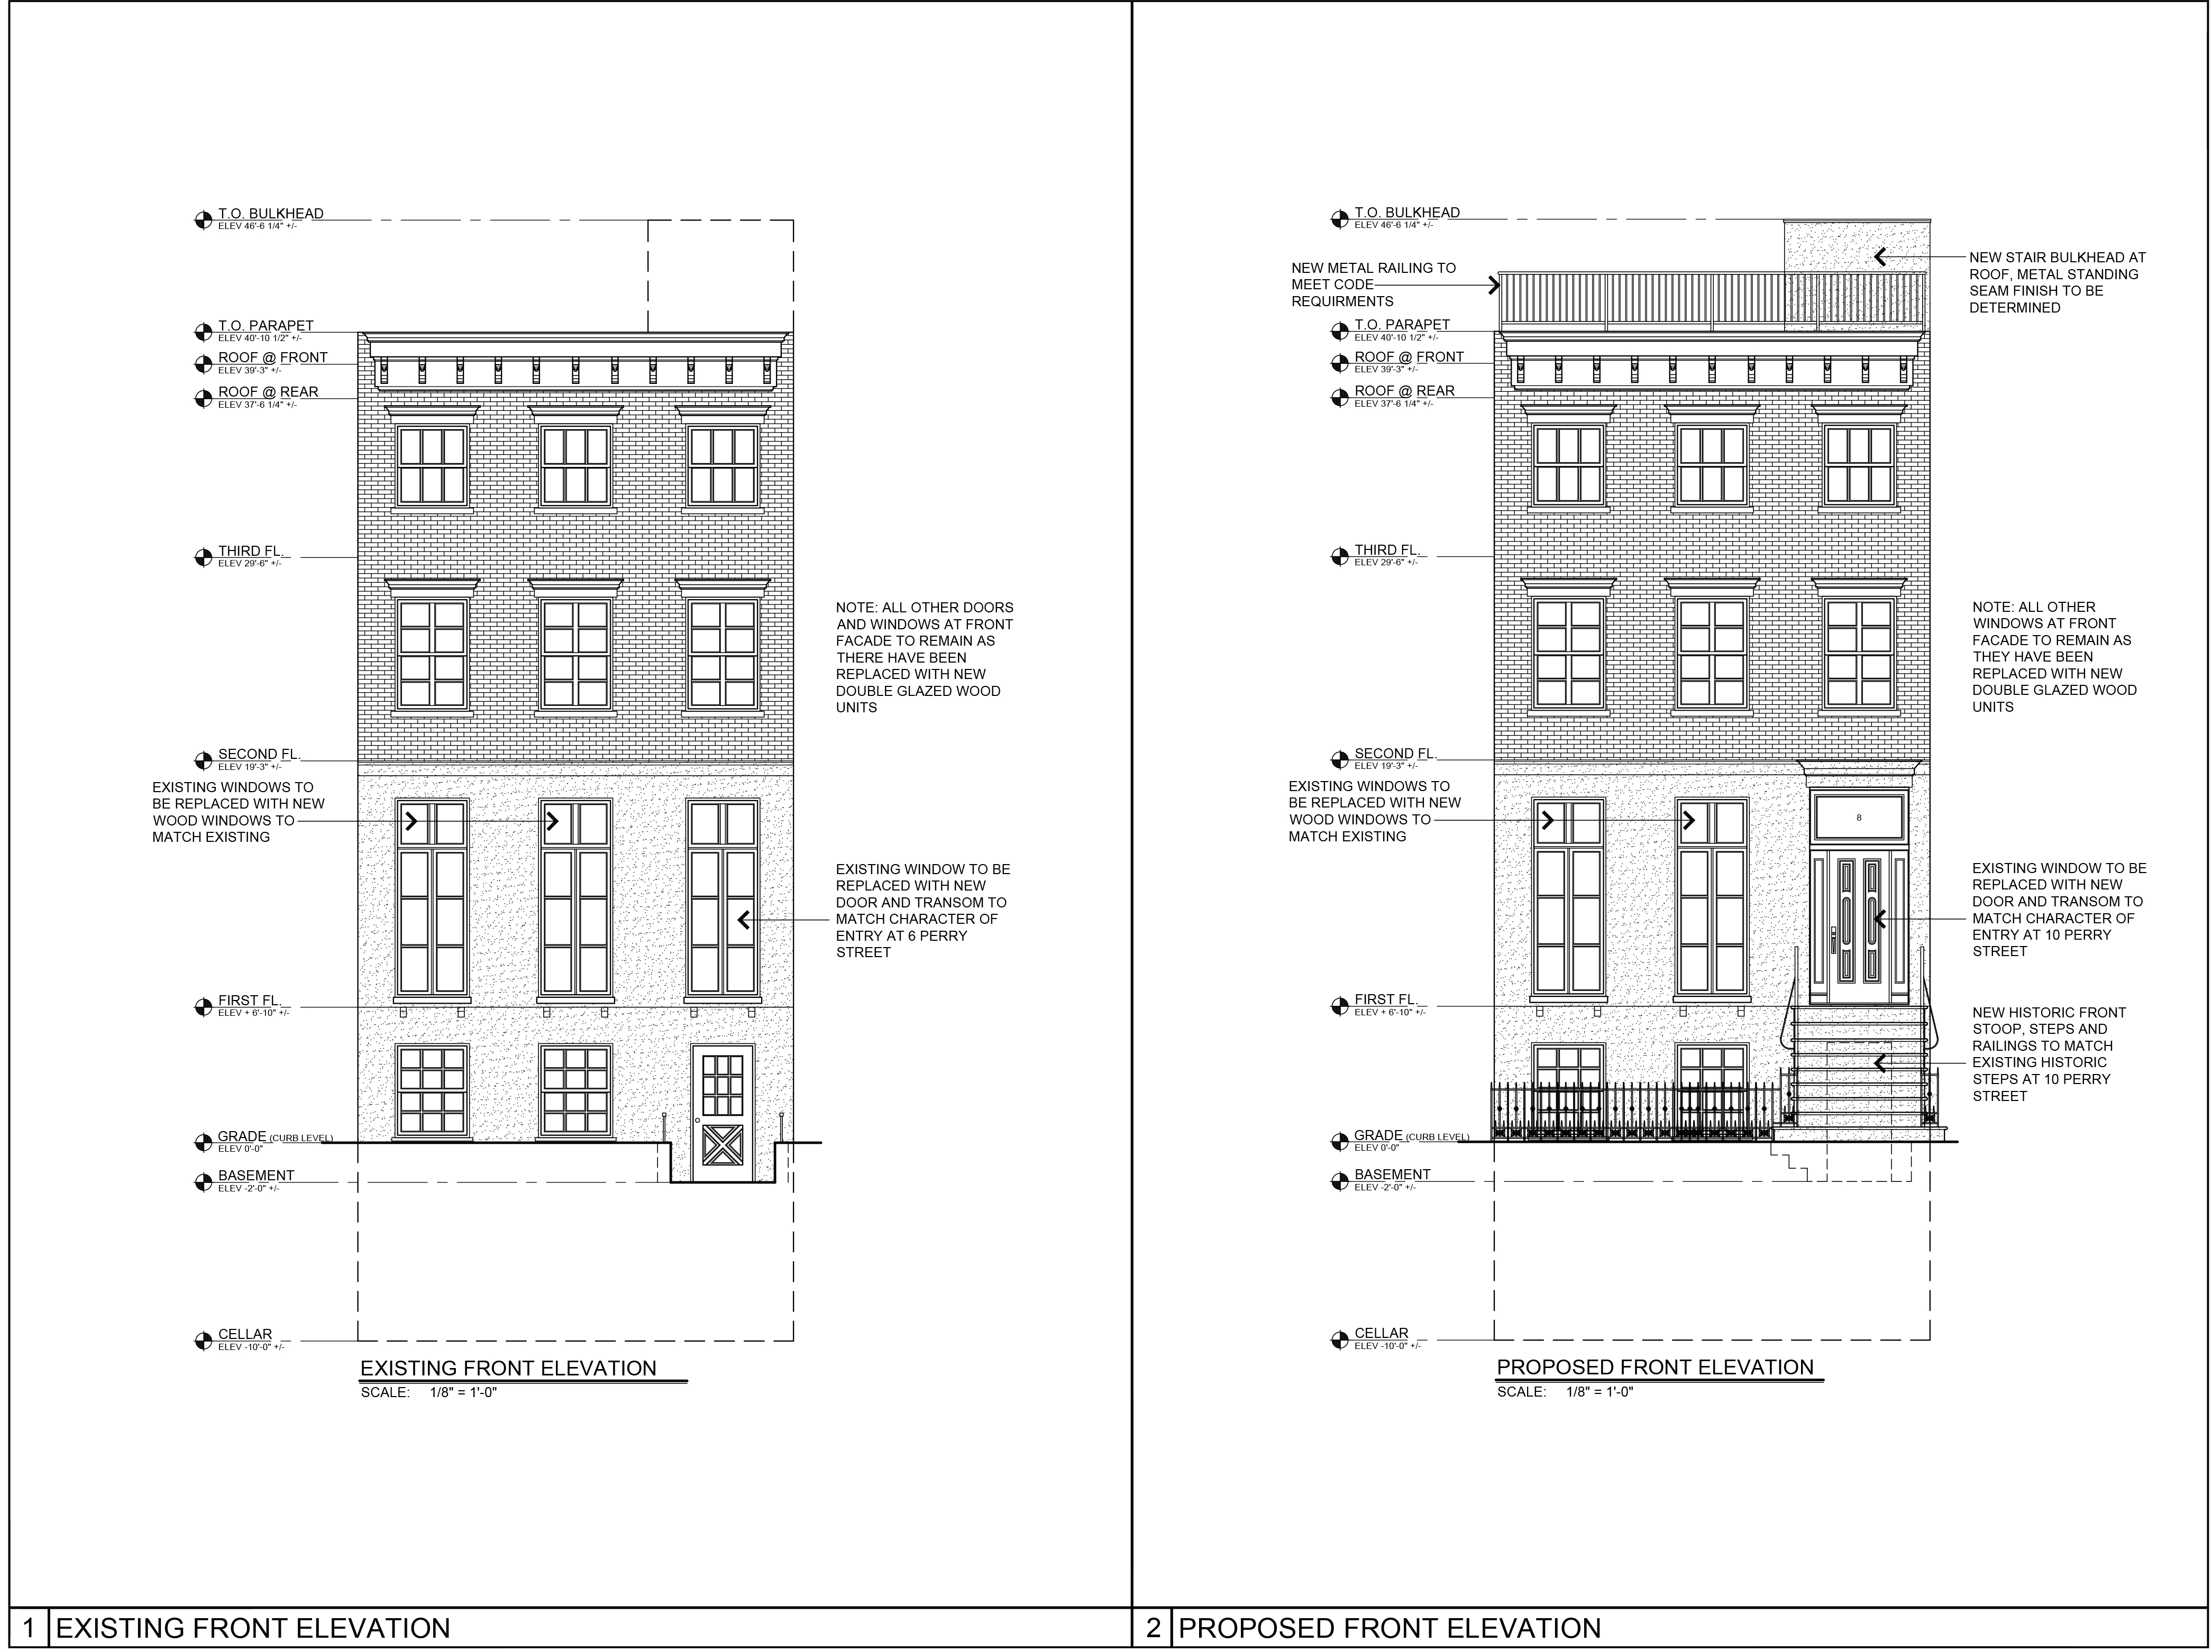 Plan for front elevation of 8 Perry Street, existing and proposed